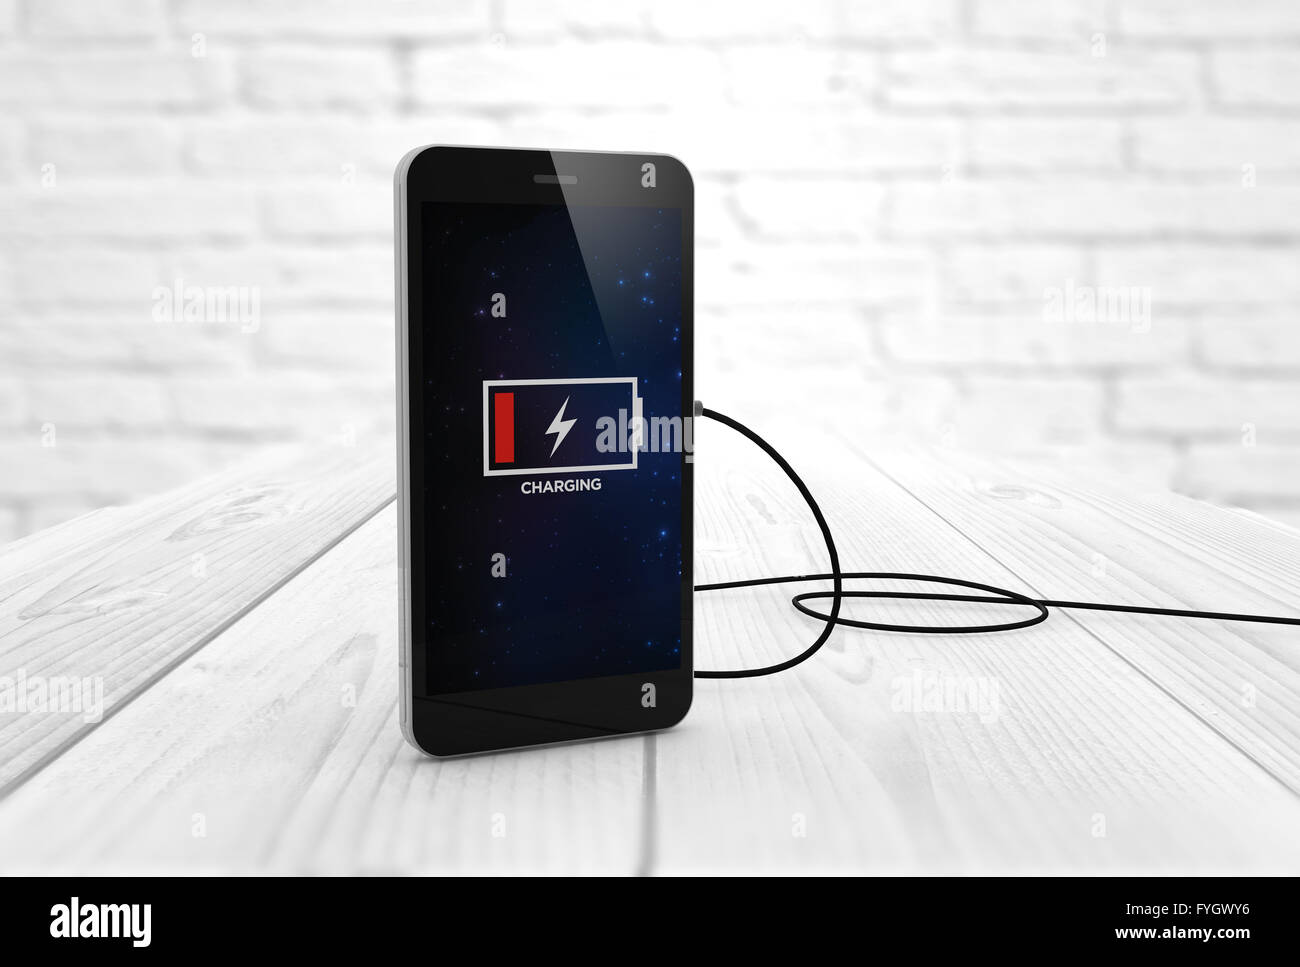 Phone charging digitally generated. All screen graphics are made up. Stock Photo